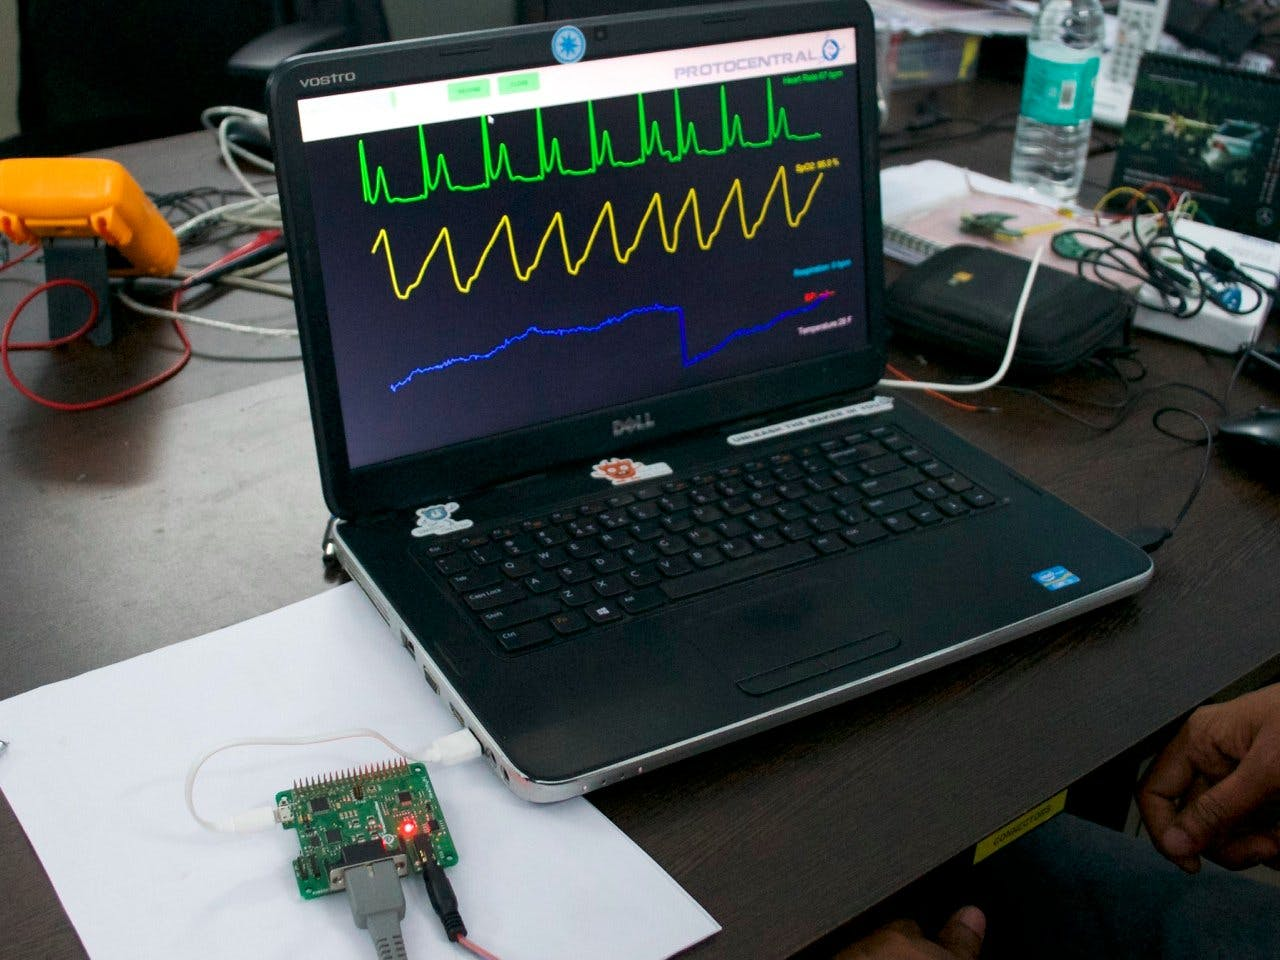 Using HealthyPi with a PC for ECG, Respiration & SpO2